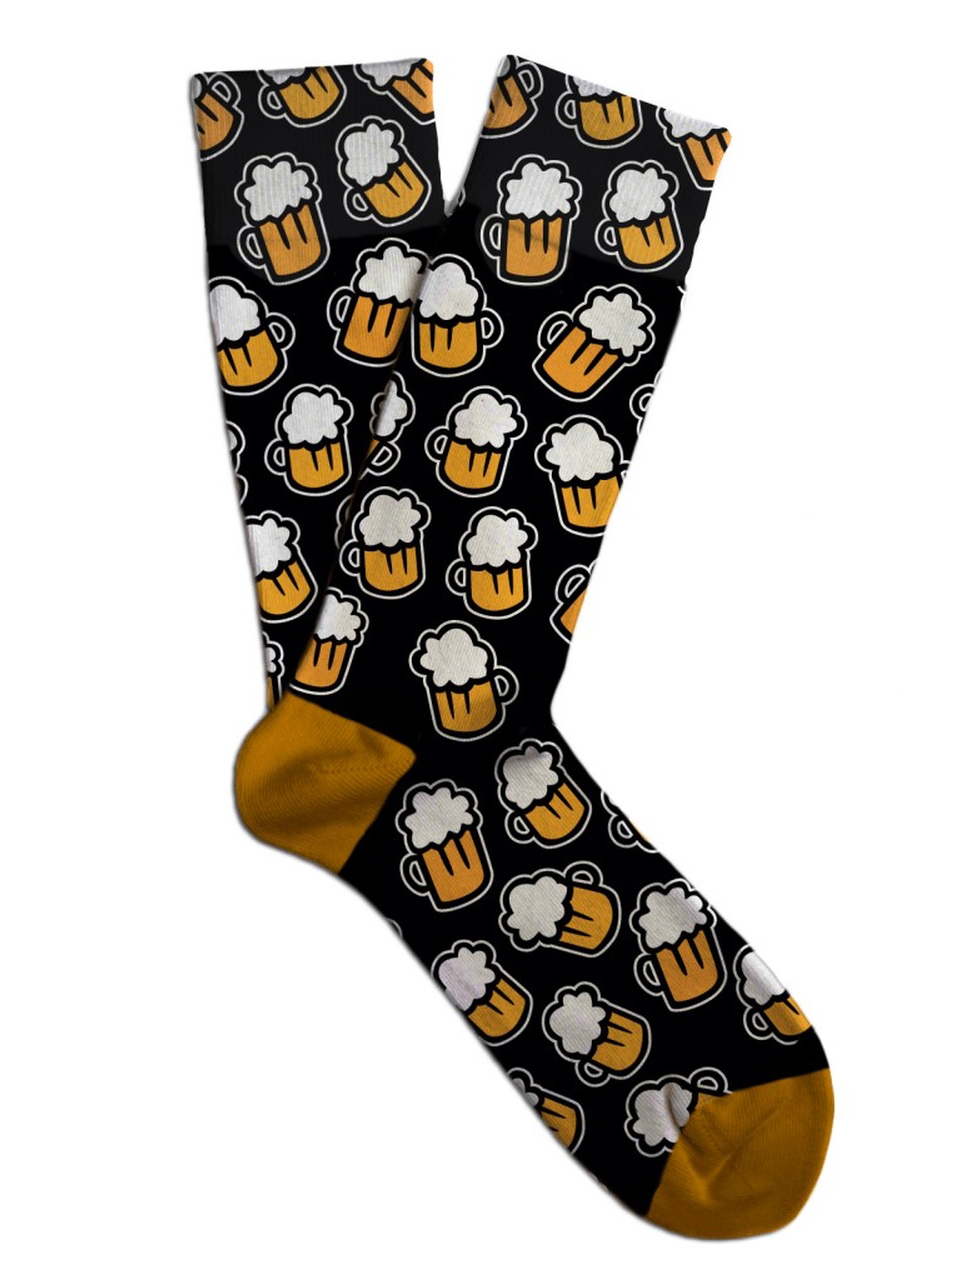 Soxit Black Unisex Socks Black Beer